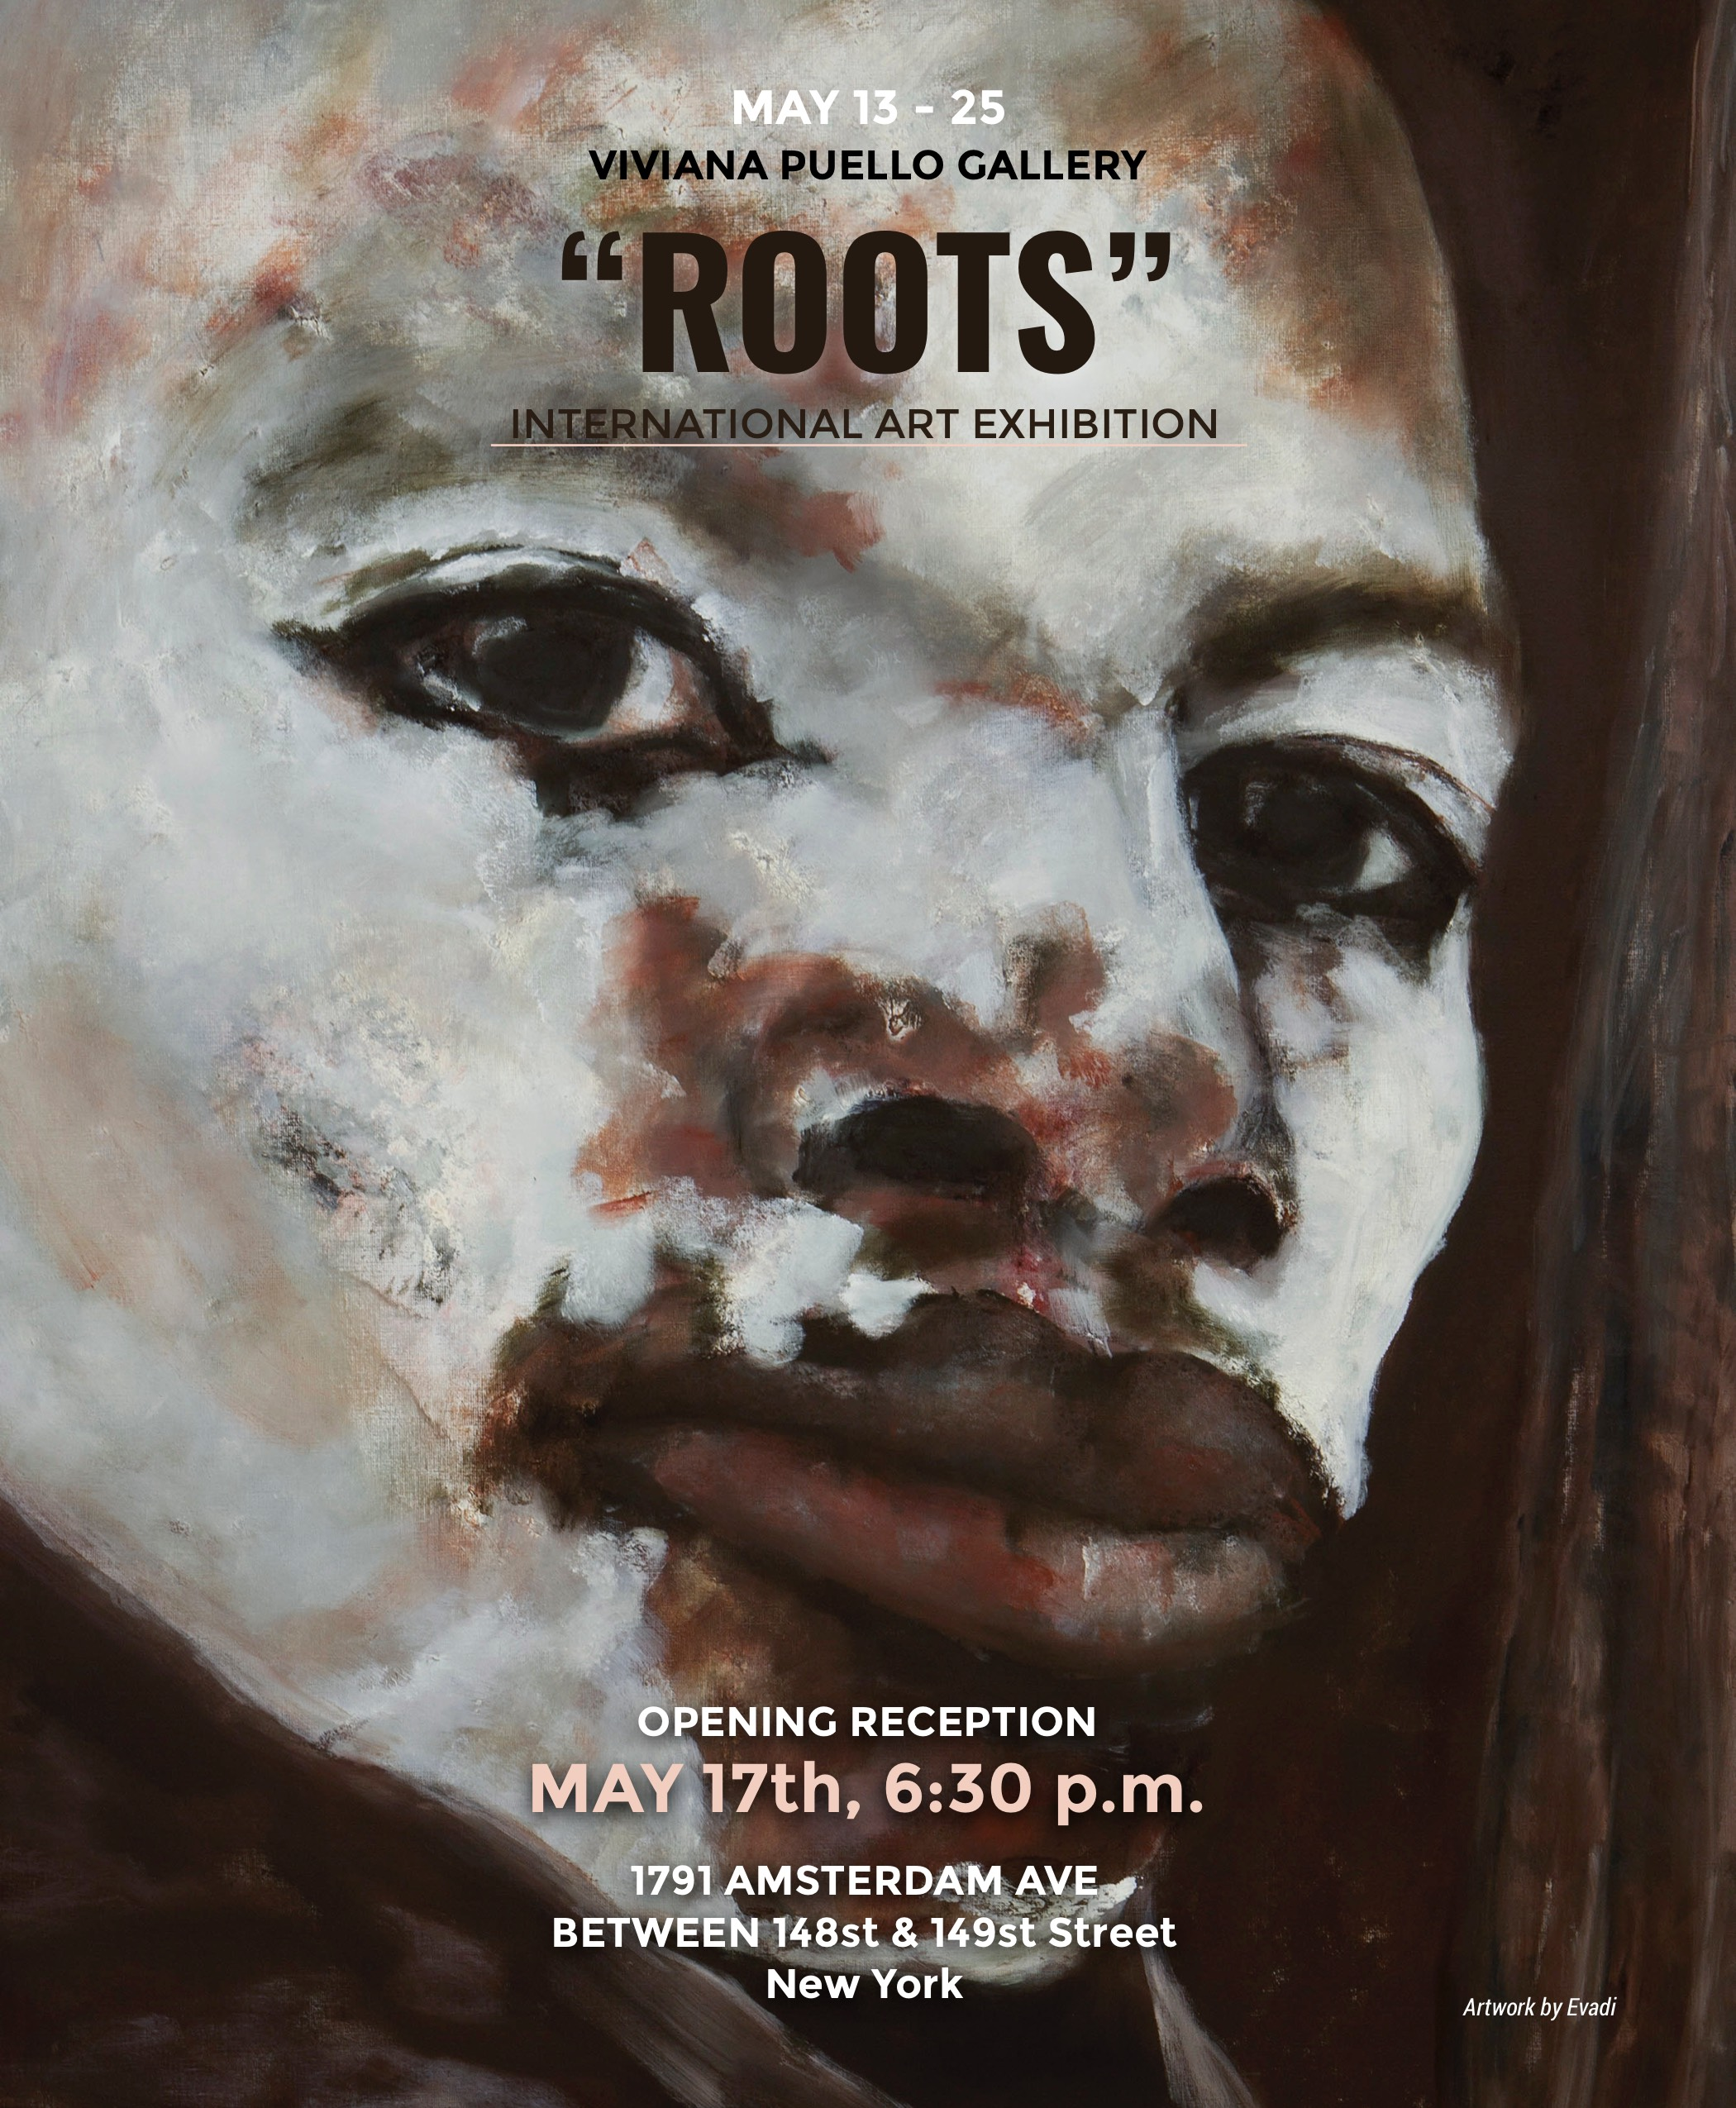 """Roots"" - International Art Exhibition"